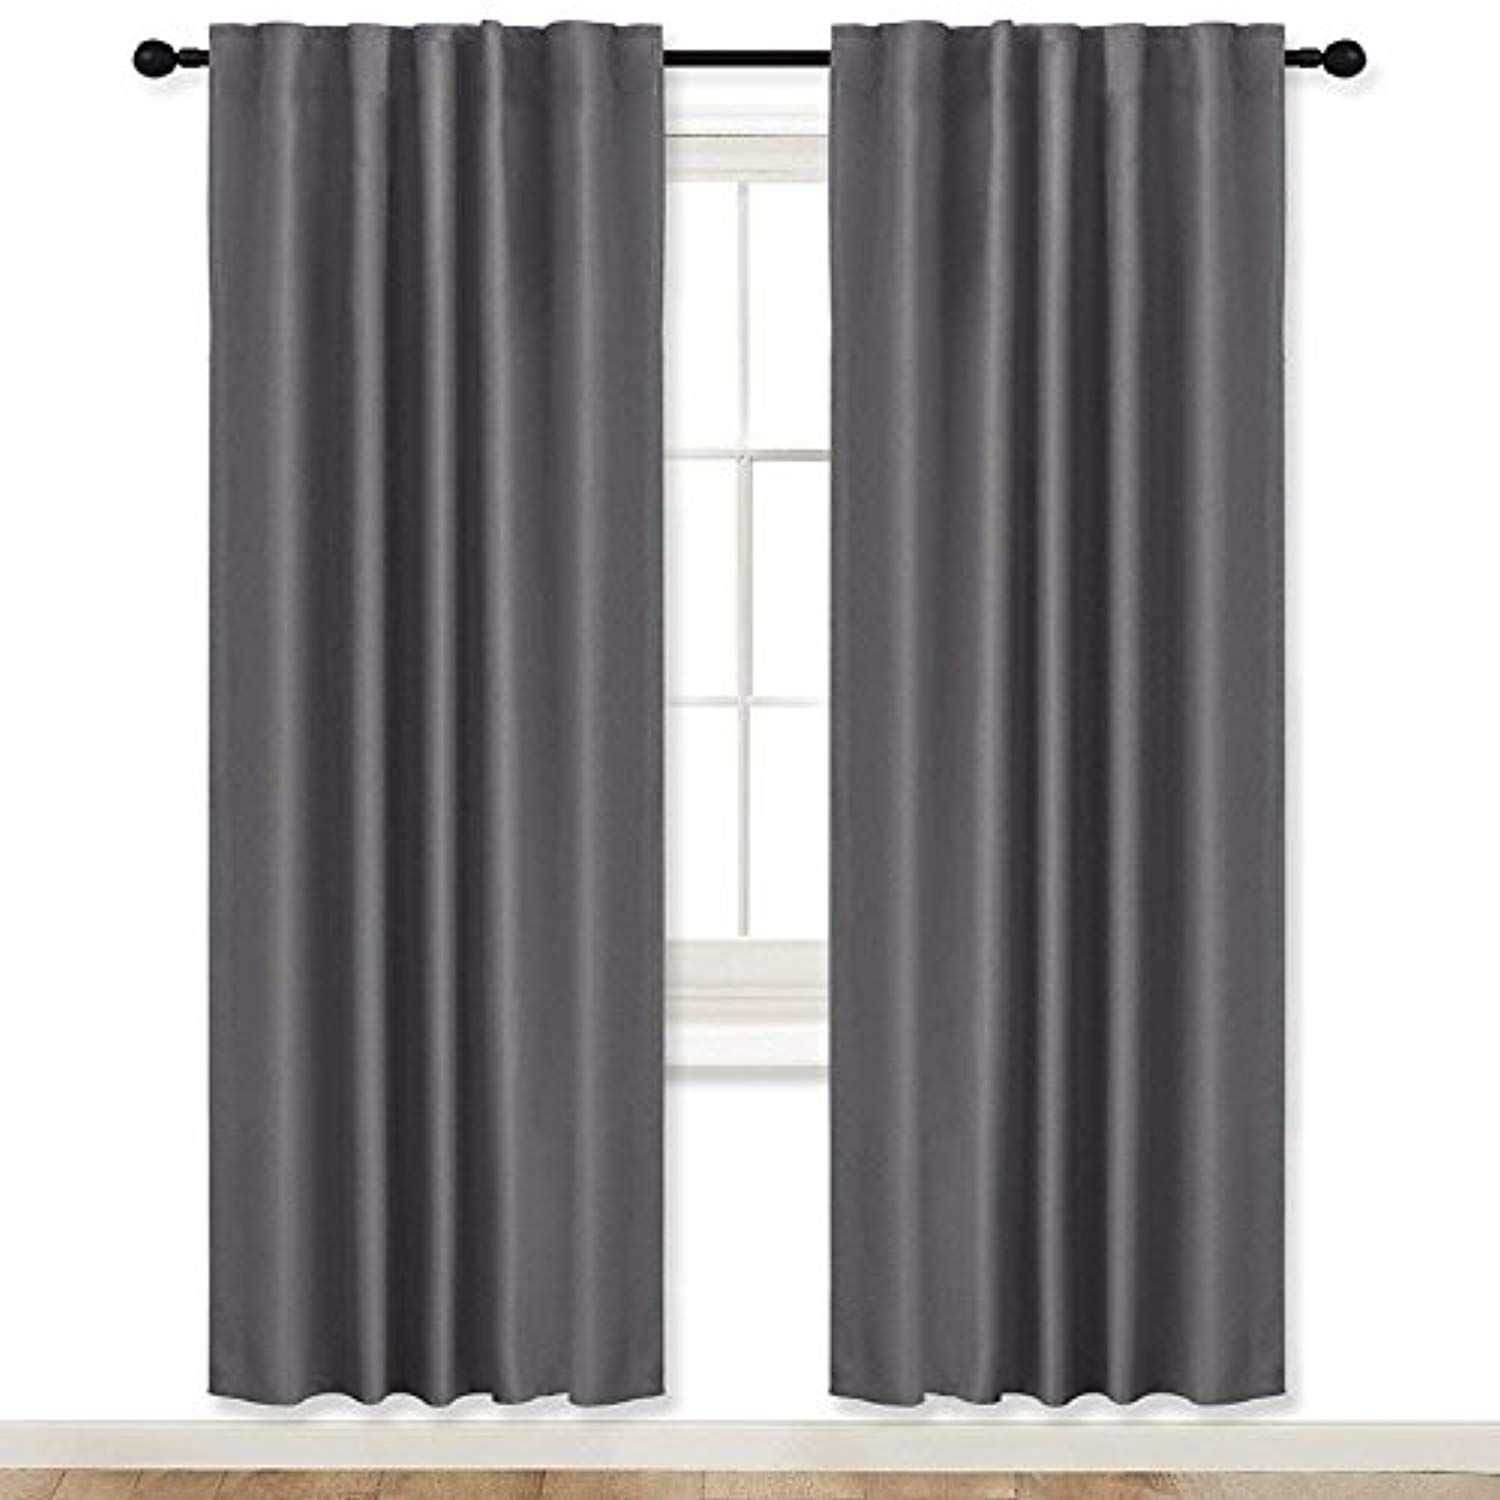 Living Room Blackout Curtains Draperies Grey Ryb Home 42 Wide X 72 Long 2 Pieces Window Treatments Room Dark Treatment Room Blackout Curtains Curtains